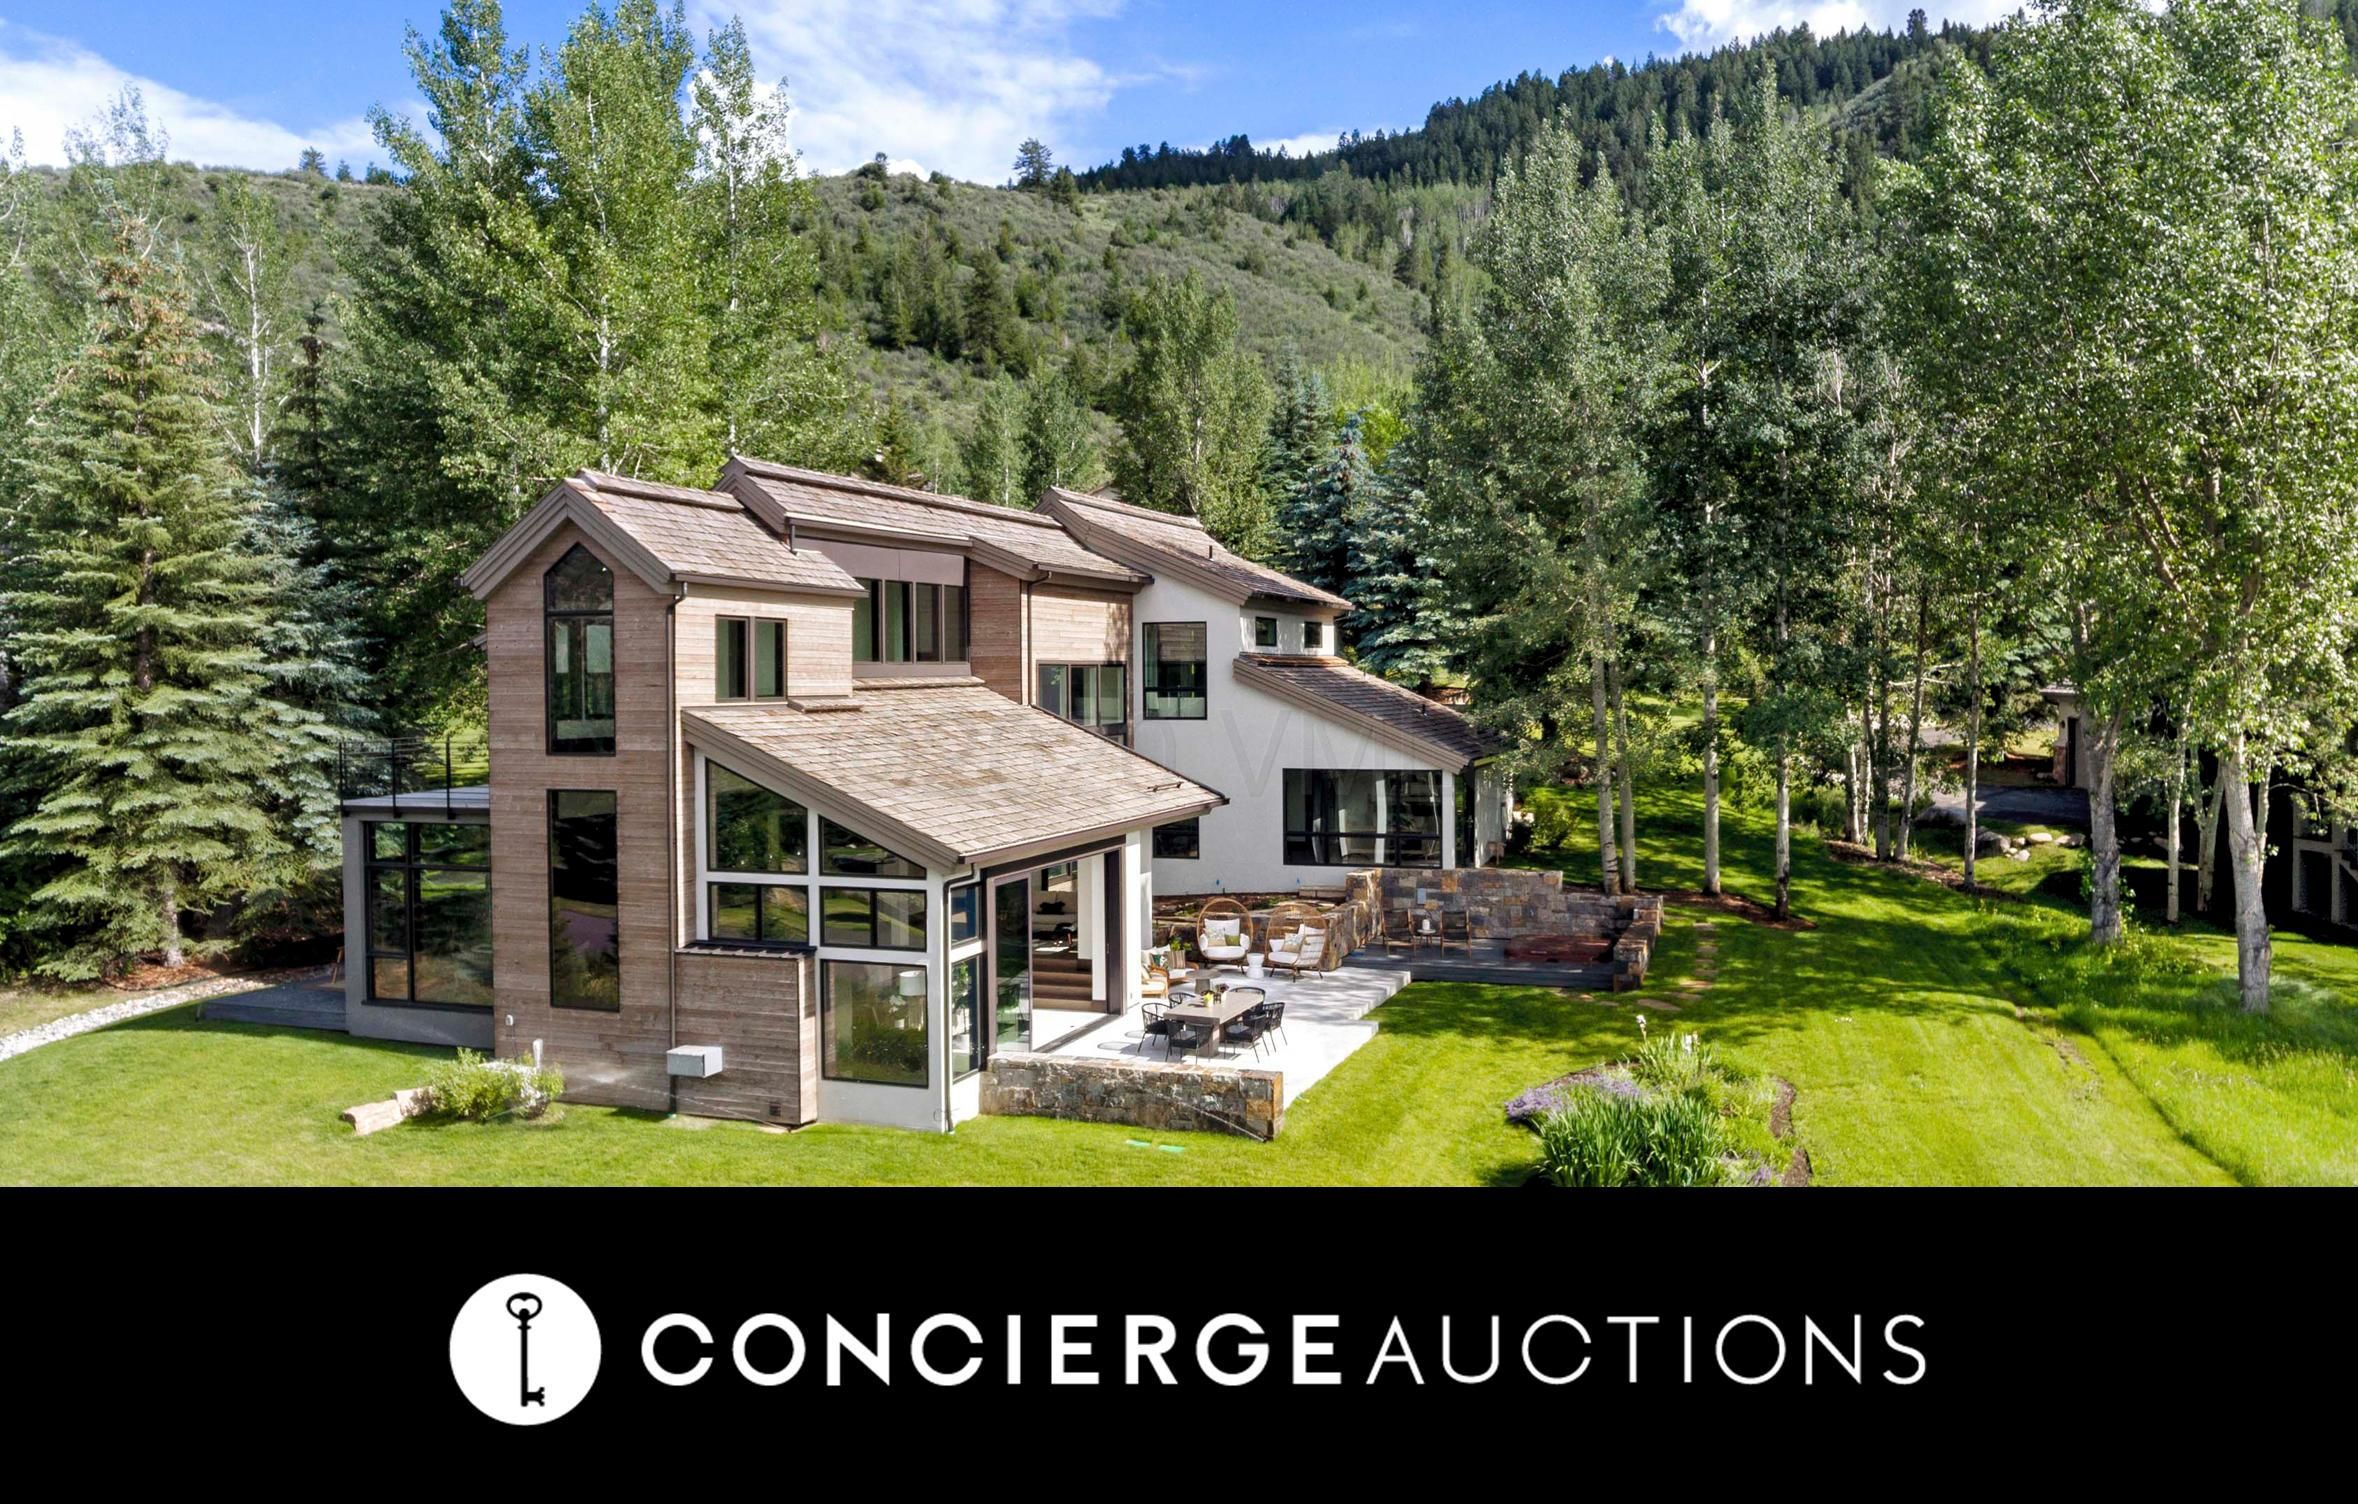 AUCTION OPEN: High bid is currently at $2.8M. Previously listed at $4.245M. No Reserve. Open daily 1-4, and in-person/virtual showings by appointment. Auction details/Register to bid: https://mailchi.mp/conciergeauctions.com/auction_alert_1_19_2018-340795Settle into a relaxed state of mind at 144 Castle Peak Gate, a contemporary mountain escape with effortless luxury in mind. A muted mix of natural materials from stone to dark hardwood plays off the crisp white walls creating a serene vibe. Walls of glass perfectly frame your spectacular mountain setting, a reminder to sit back and take it all in. The interior flows seamlessly to the outdoors through telescoping glass doors, where a patio stands ready to host family dinners and conversations. Take your morning coffee or your yoga mat to the upstairs deck. Your glorious, light-filled main-level master is surrounded by glass and mountain views, creating a serene and intimate escape. Luxurious finishes bring a touch of the city to this newly renovated property, creating a modern mountain estate to enjoy year-round.